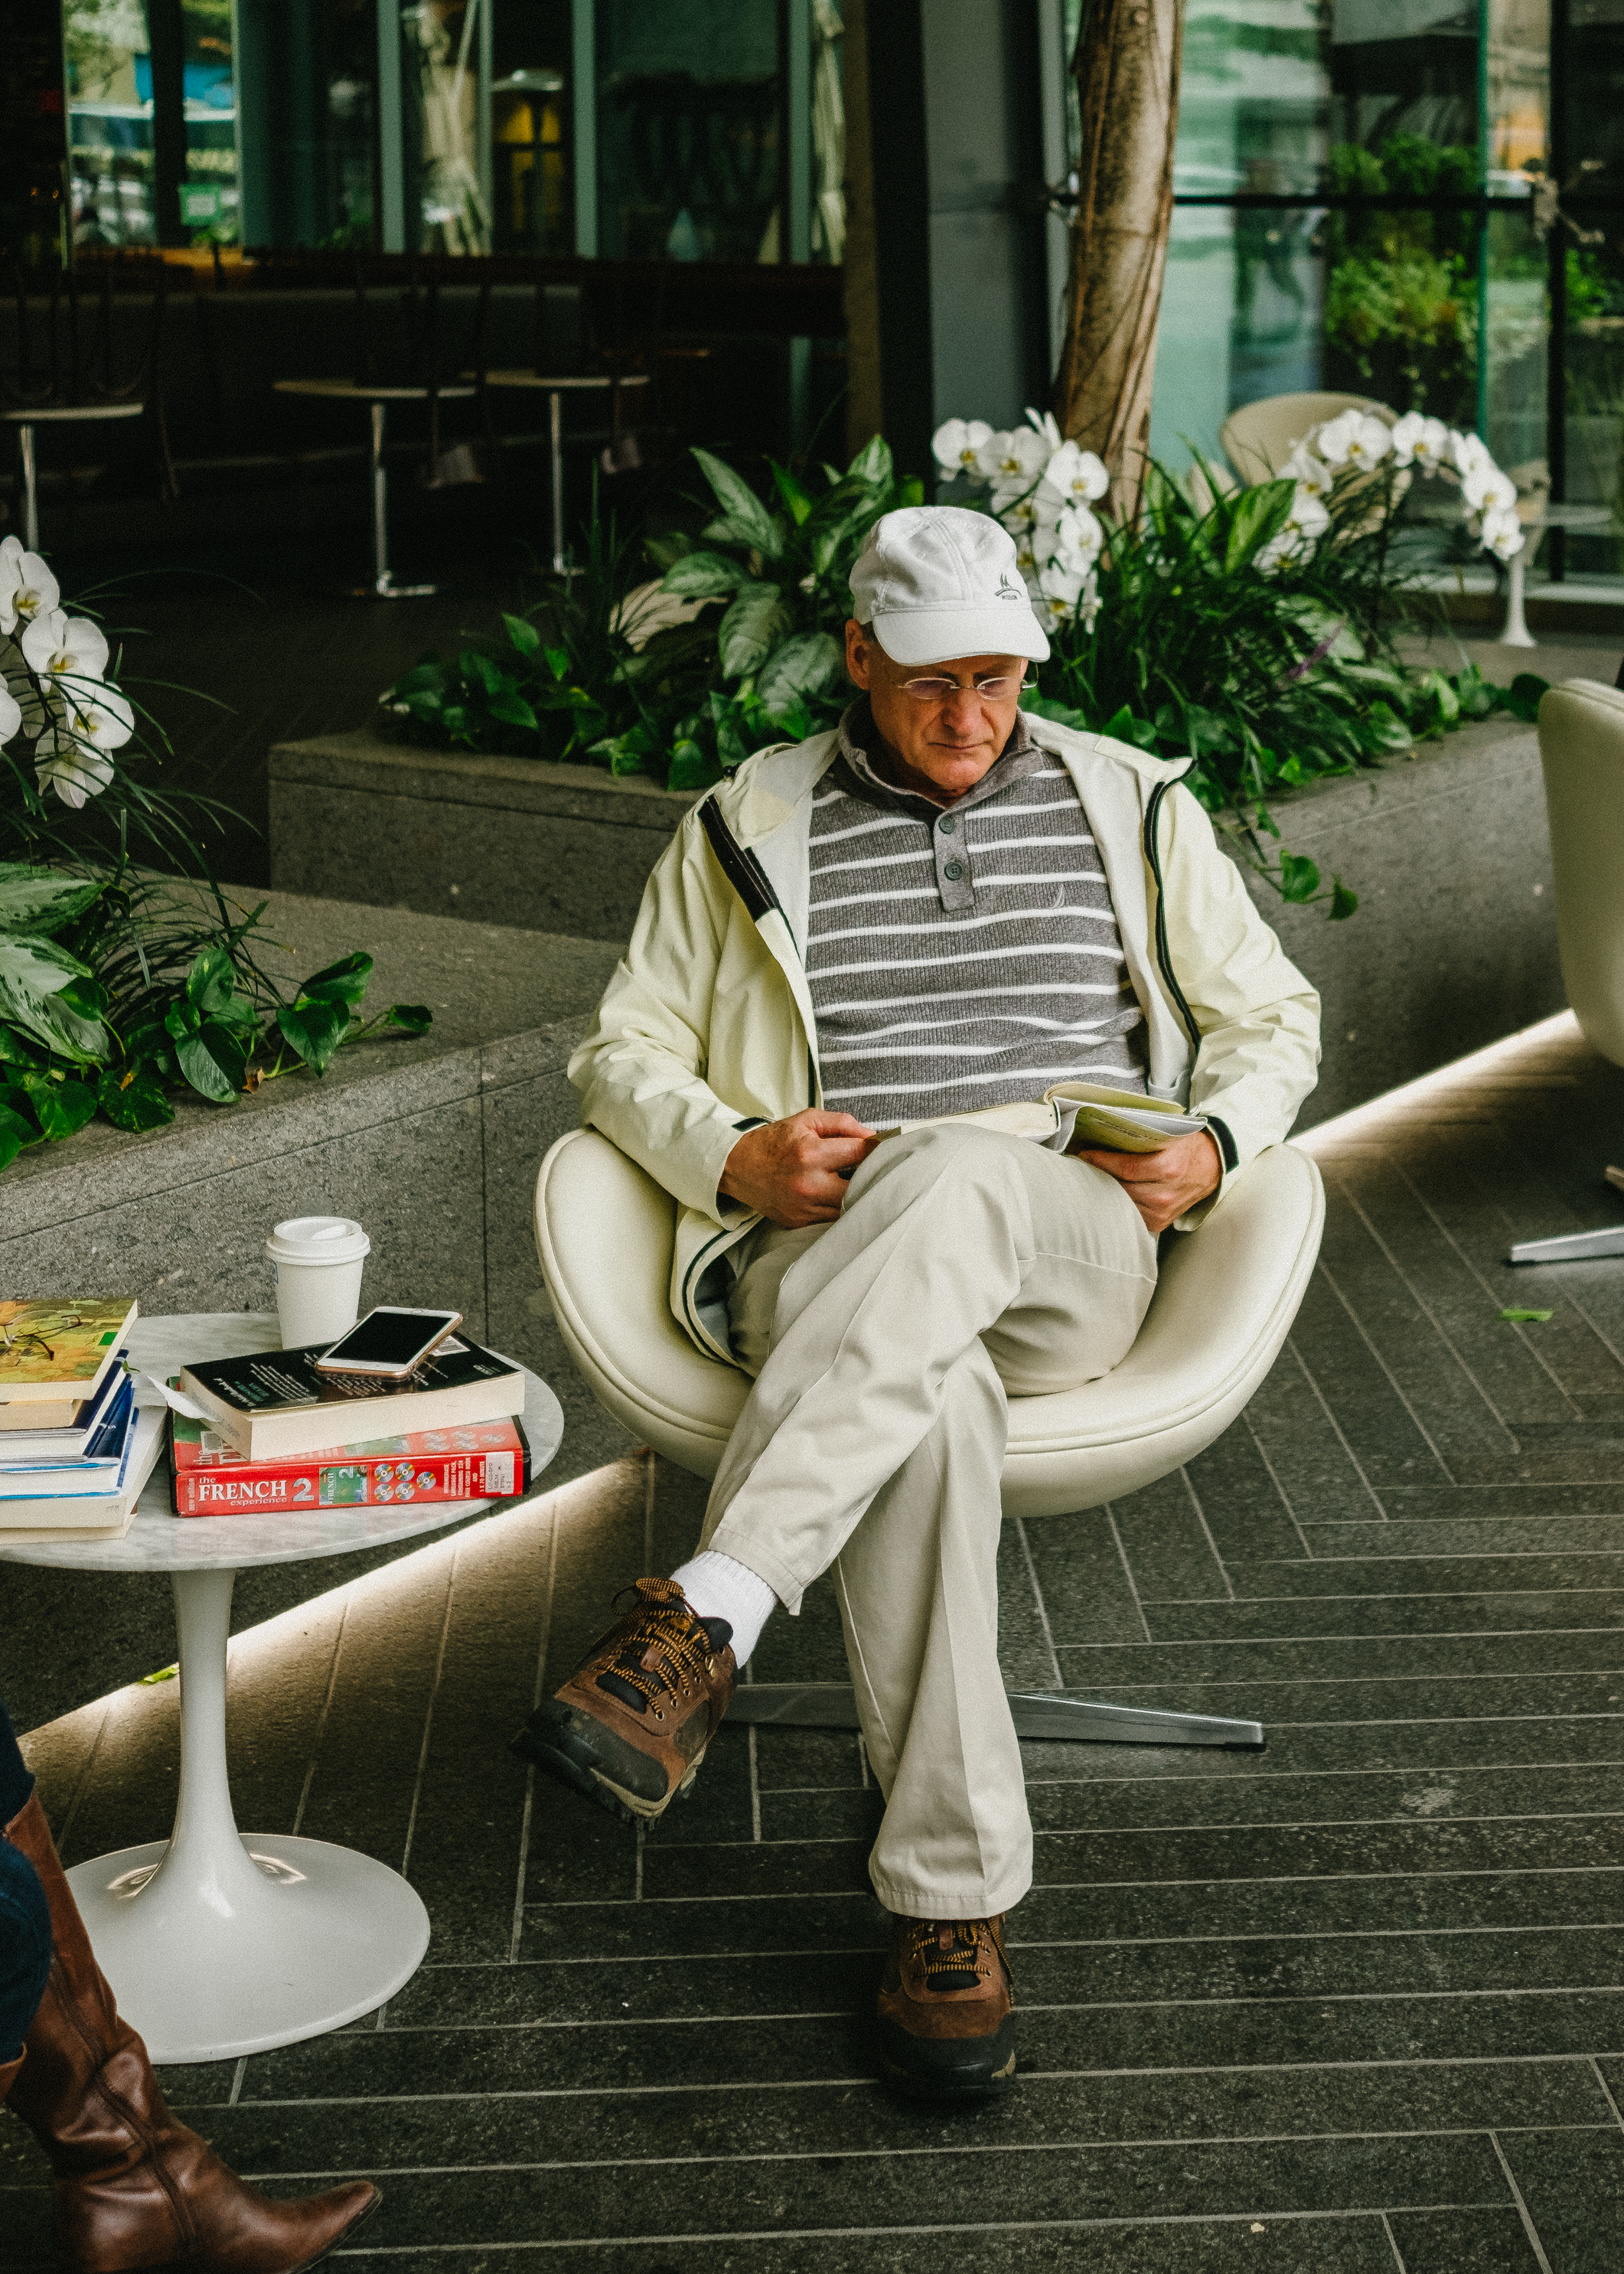 Vancouver_streetphotography_august-9.jpg